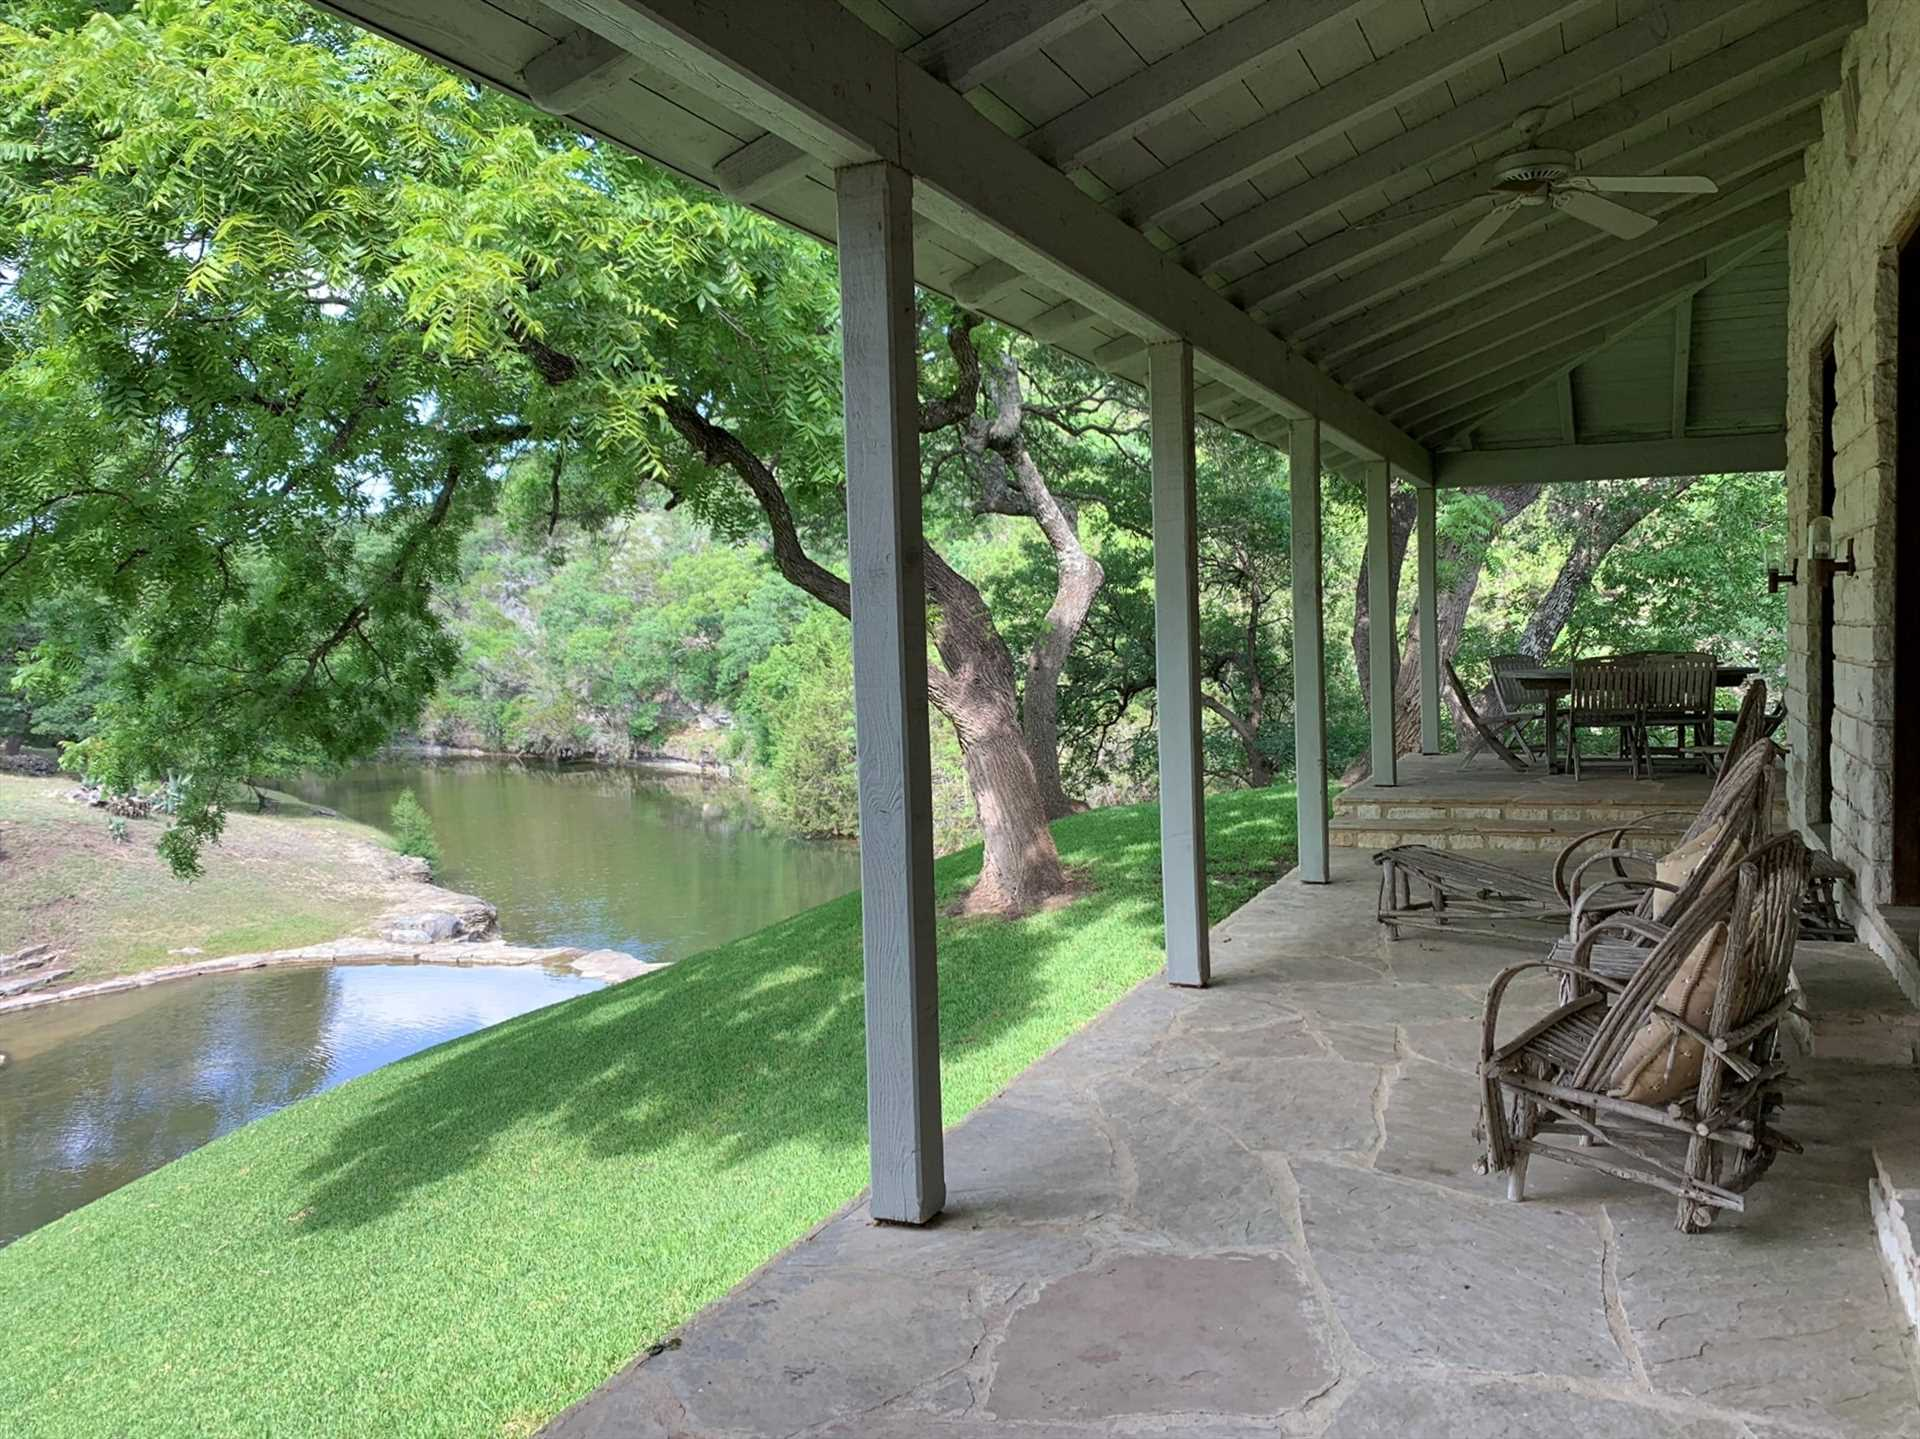 Fall Creek flows right behind the Homestead. Wade in for a cooling dip, or enjoy the view from the shaded porch!